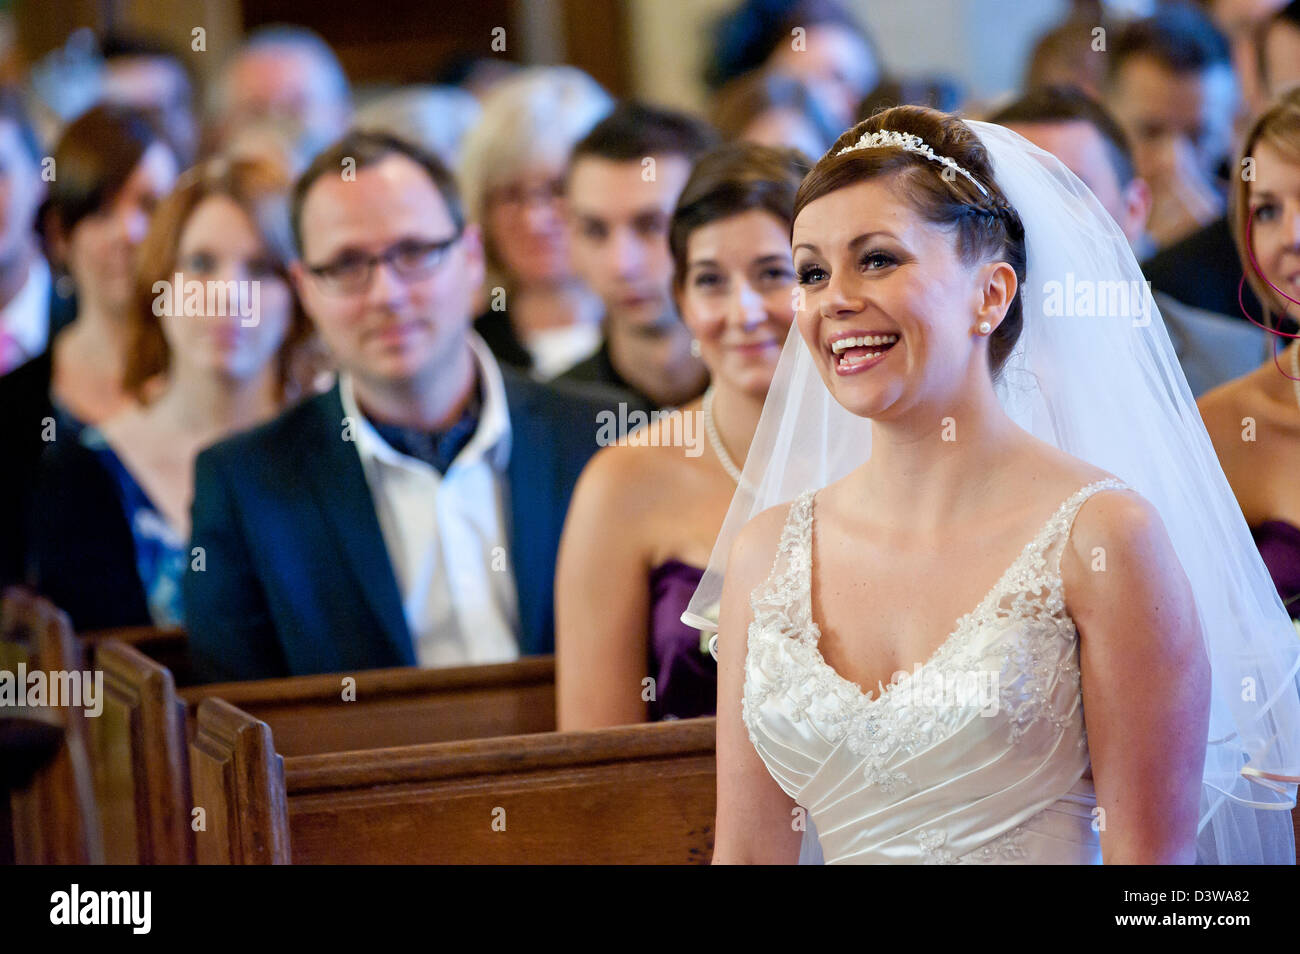 A Happy Bride At A Wedding Service Inside A Church In England Uk